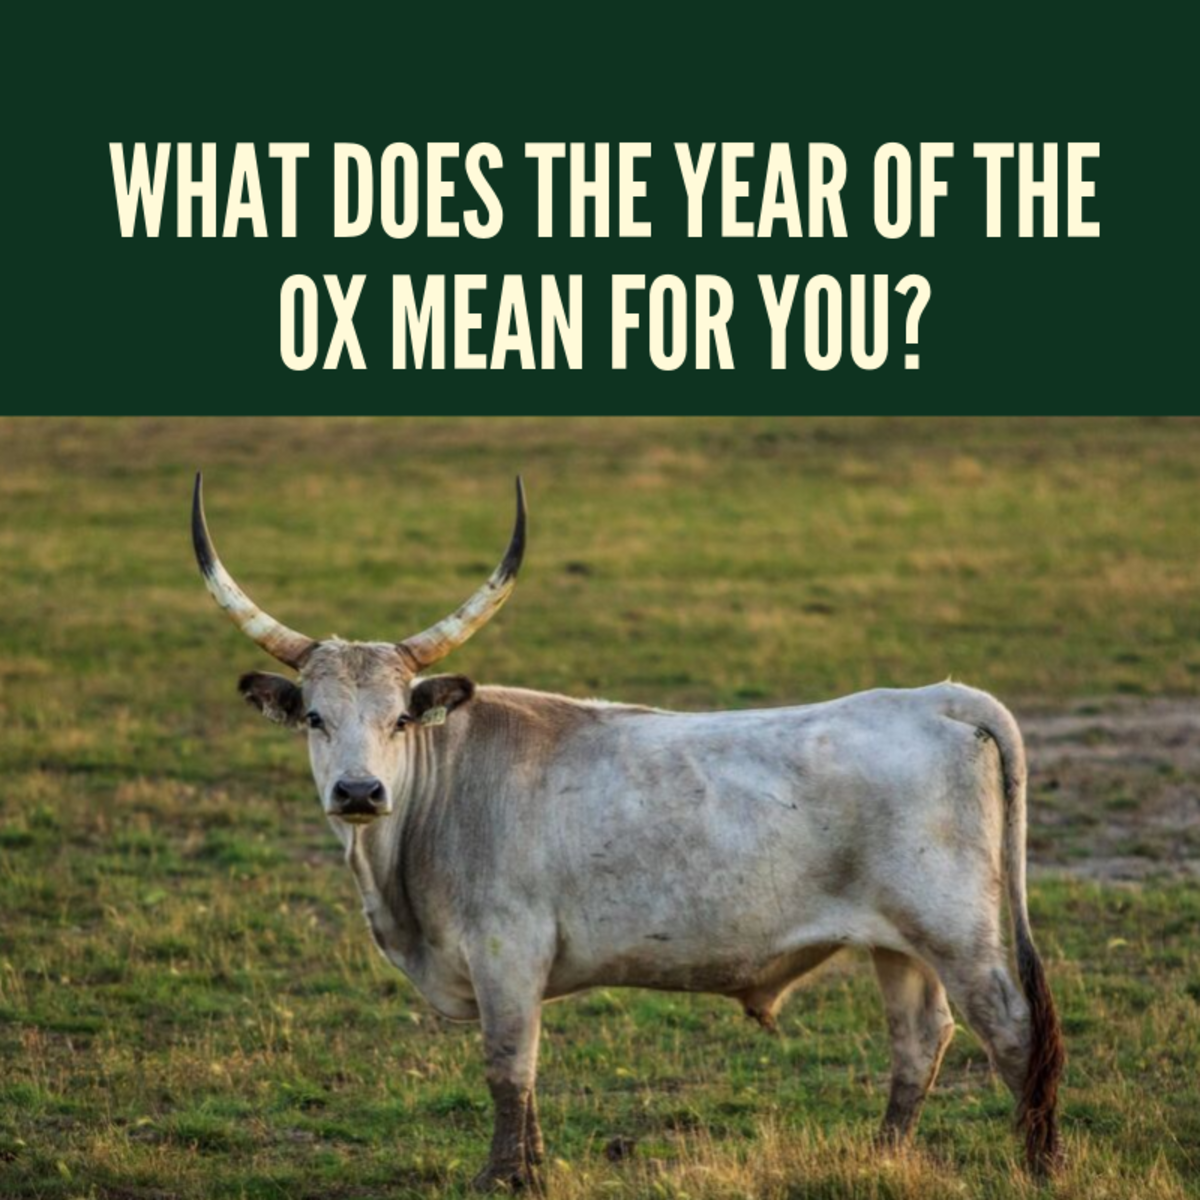 What Does the Year of the Ox Mean for You?